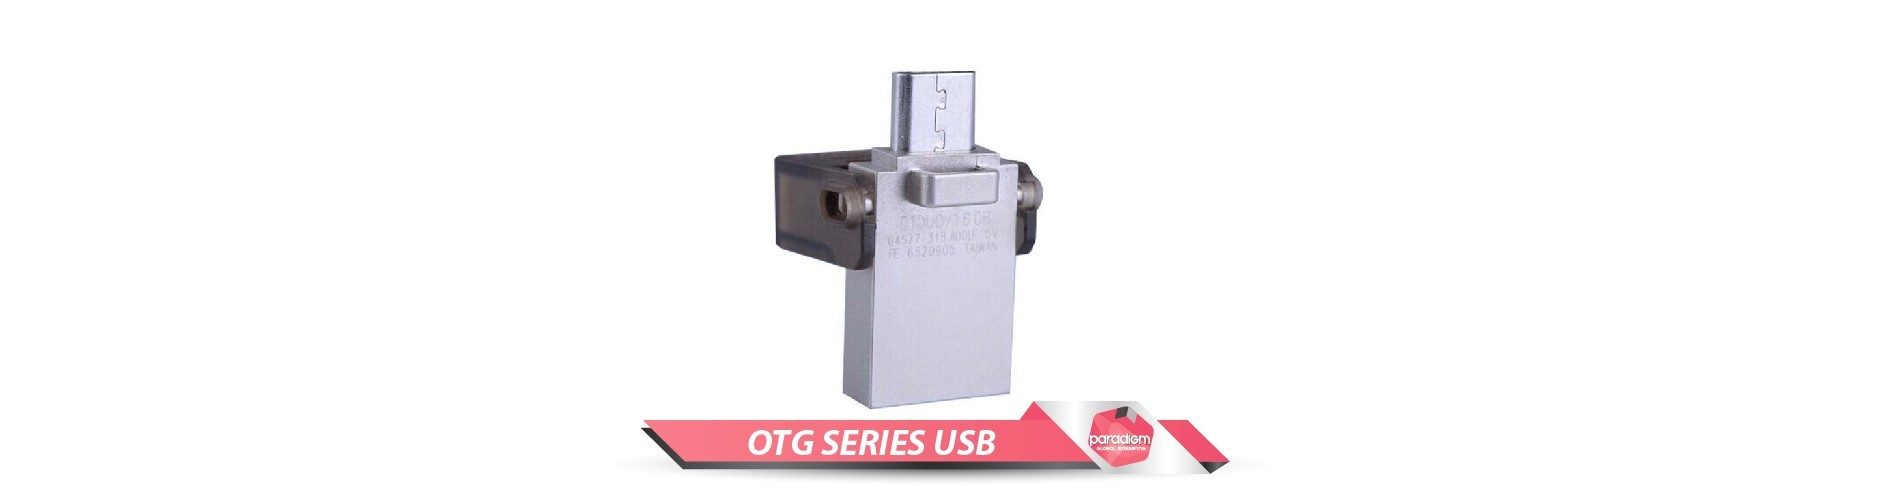 OTG series USB